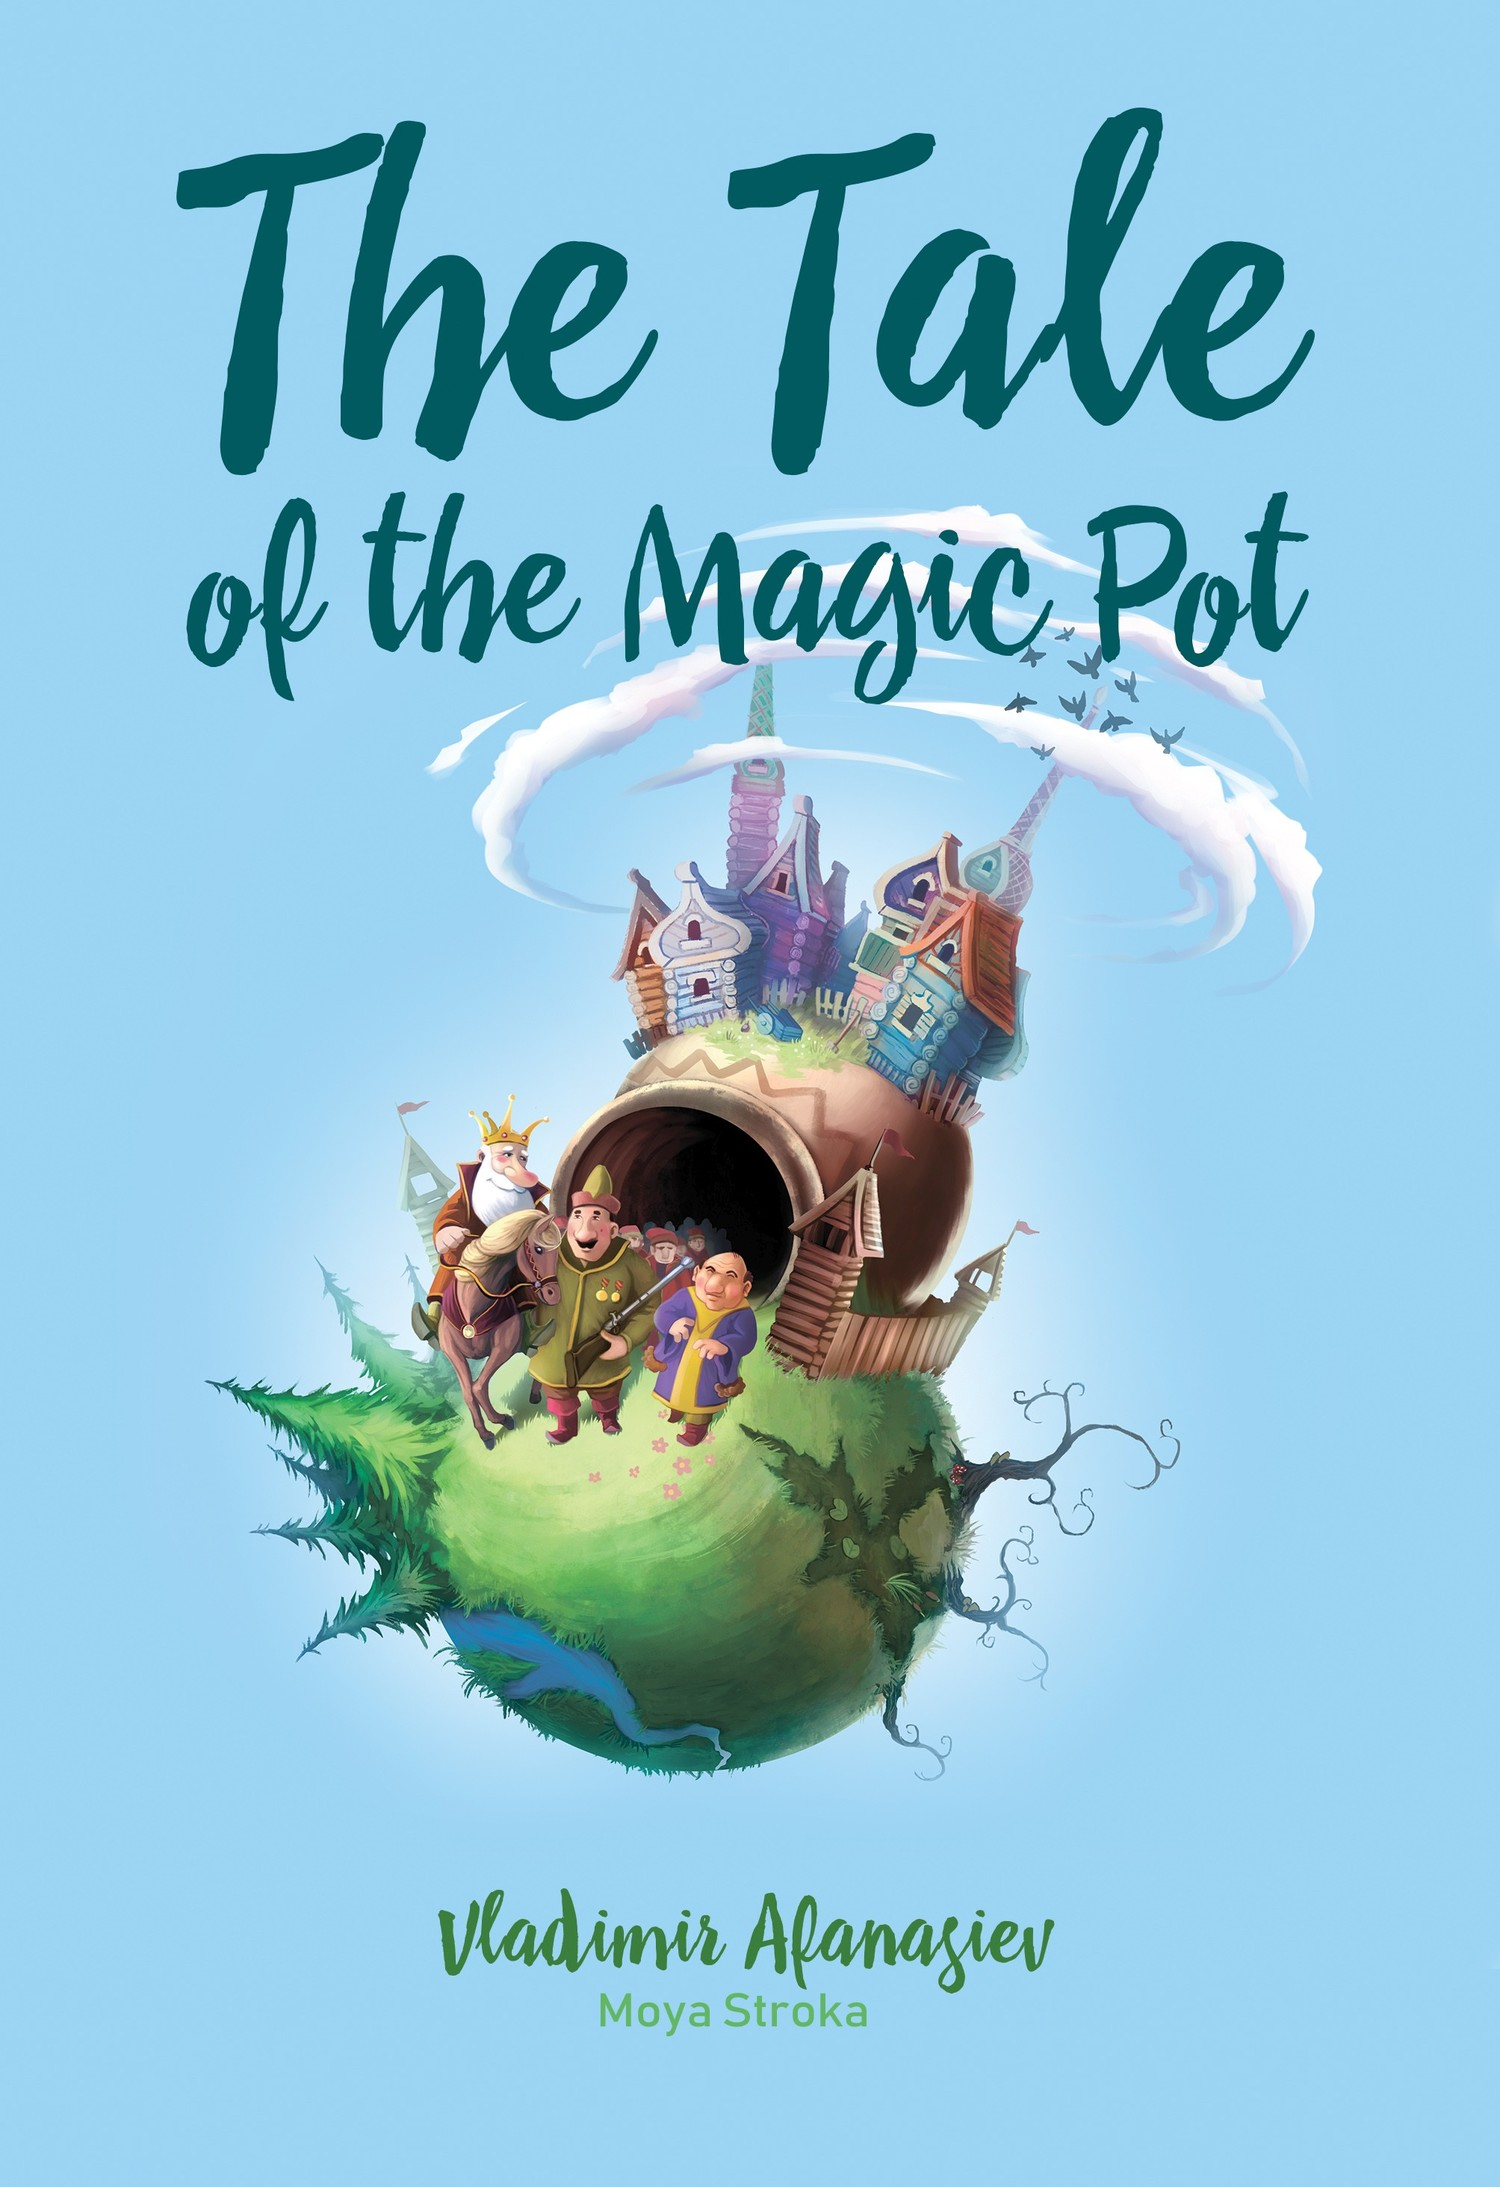 Владимир Афанасьев The Tale of the Magic Pot donald luskin i am john galt today s heroic innovators building the world and the villainous parasites destroying it isbn 9781118100967